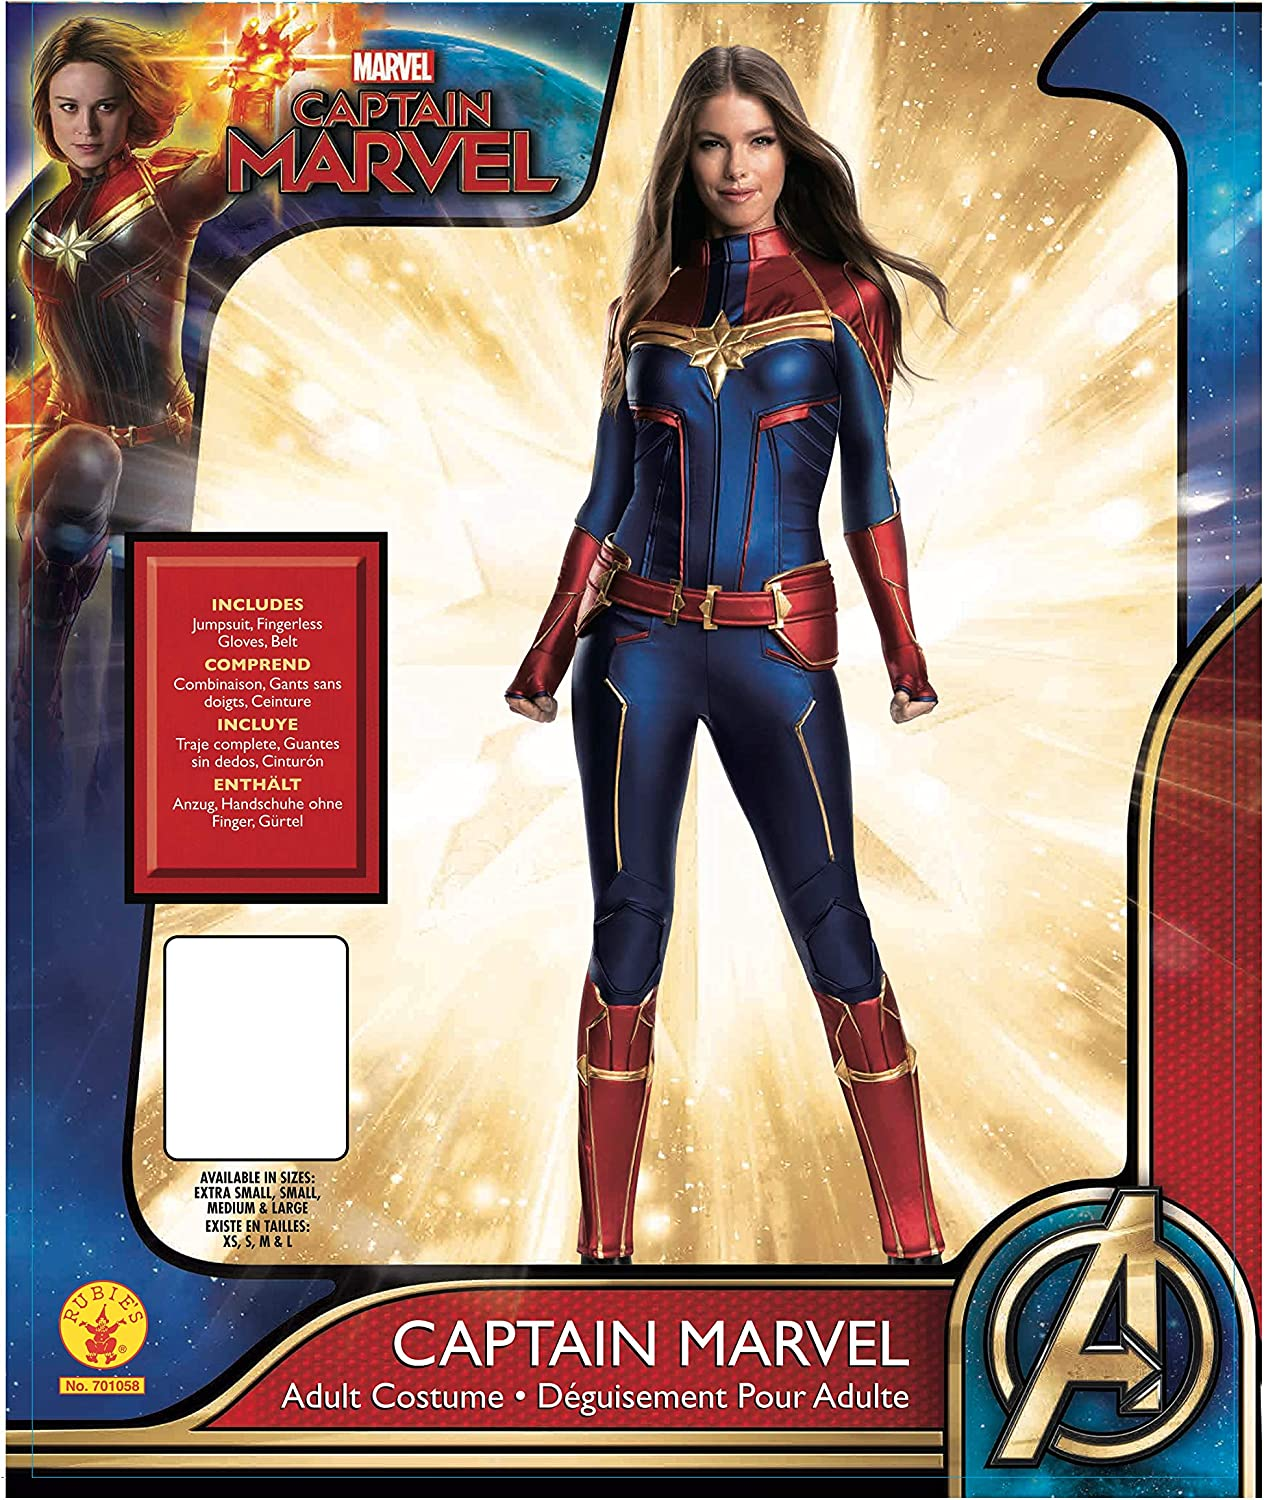 Amazon Com Rubie S Women S Marvel Adult Captain Marvel Adult Grand Heritage Costume Adult Costume Clothing Get your courageous youngster ready for epic adventures as one of the universe's most powerful heroes in this awesome costume inspired by the forthcoming blockbuster, marvel's captain you may experience issues while visiting marvel shop with your current web browser version/configuration. rubie s women s marvel adult captain marvel adult grand heritage costume adult costume